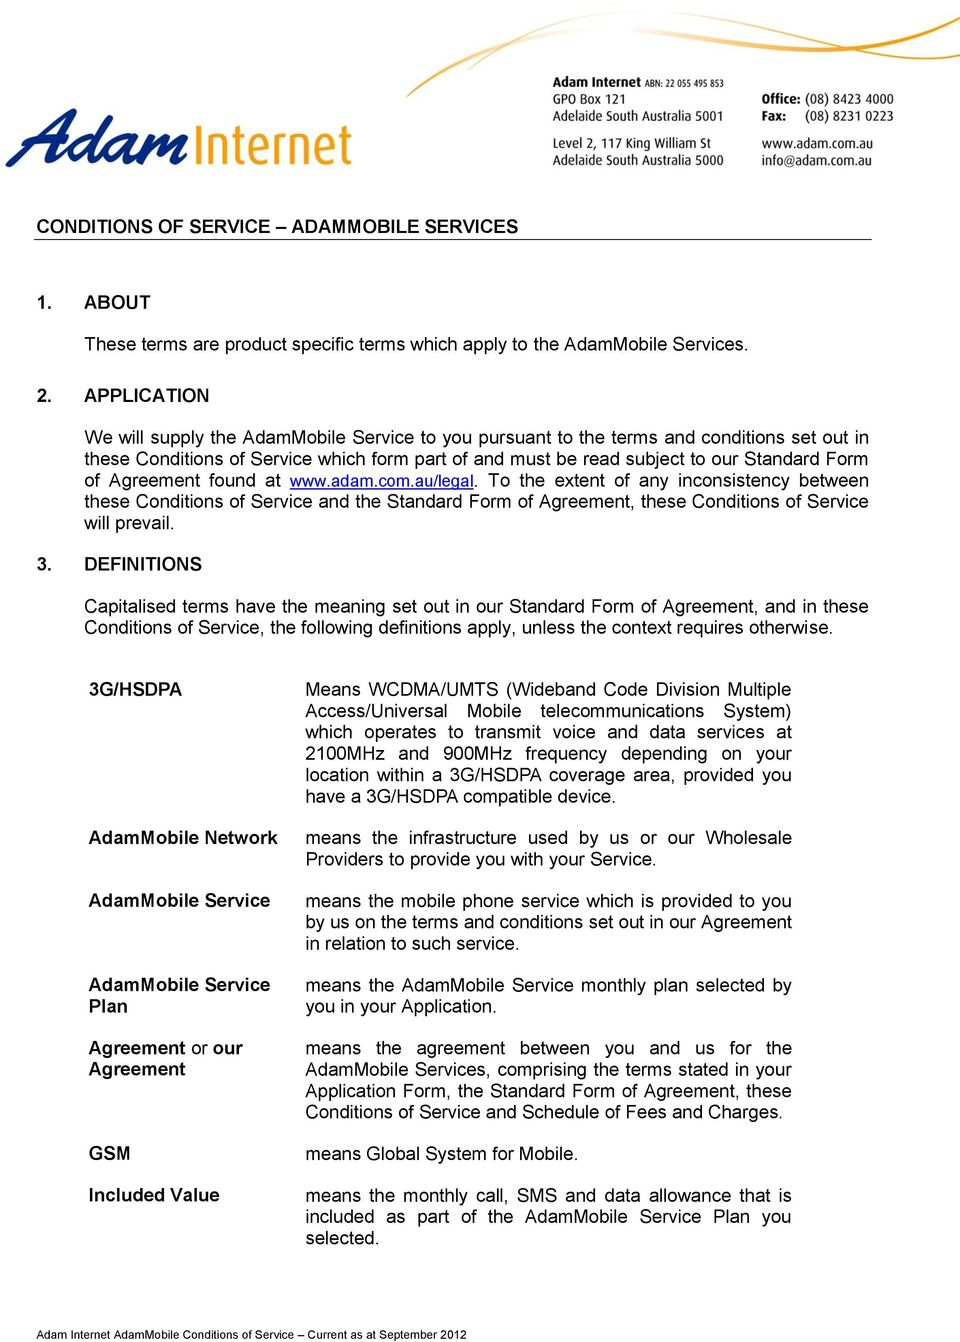 of Agreement found at www.adam.com.au/legal. To the extent of any inconsistency between these Conditions of Service and the Standard Form of Agreement, these Conditions of Service will prevail. 3.